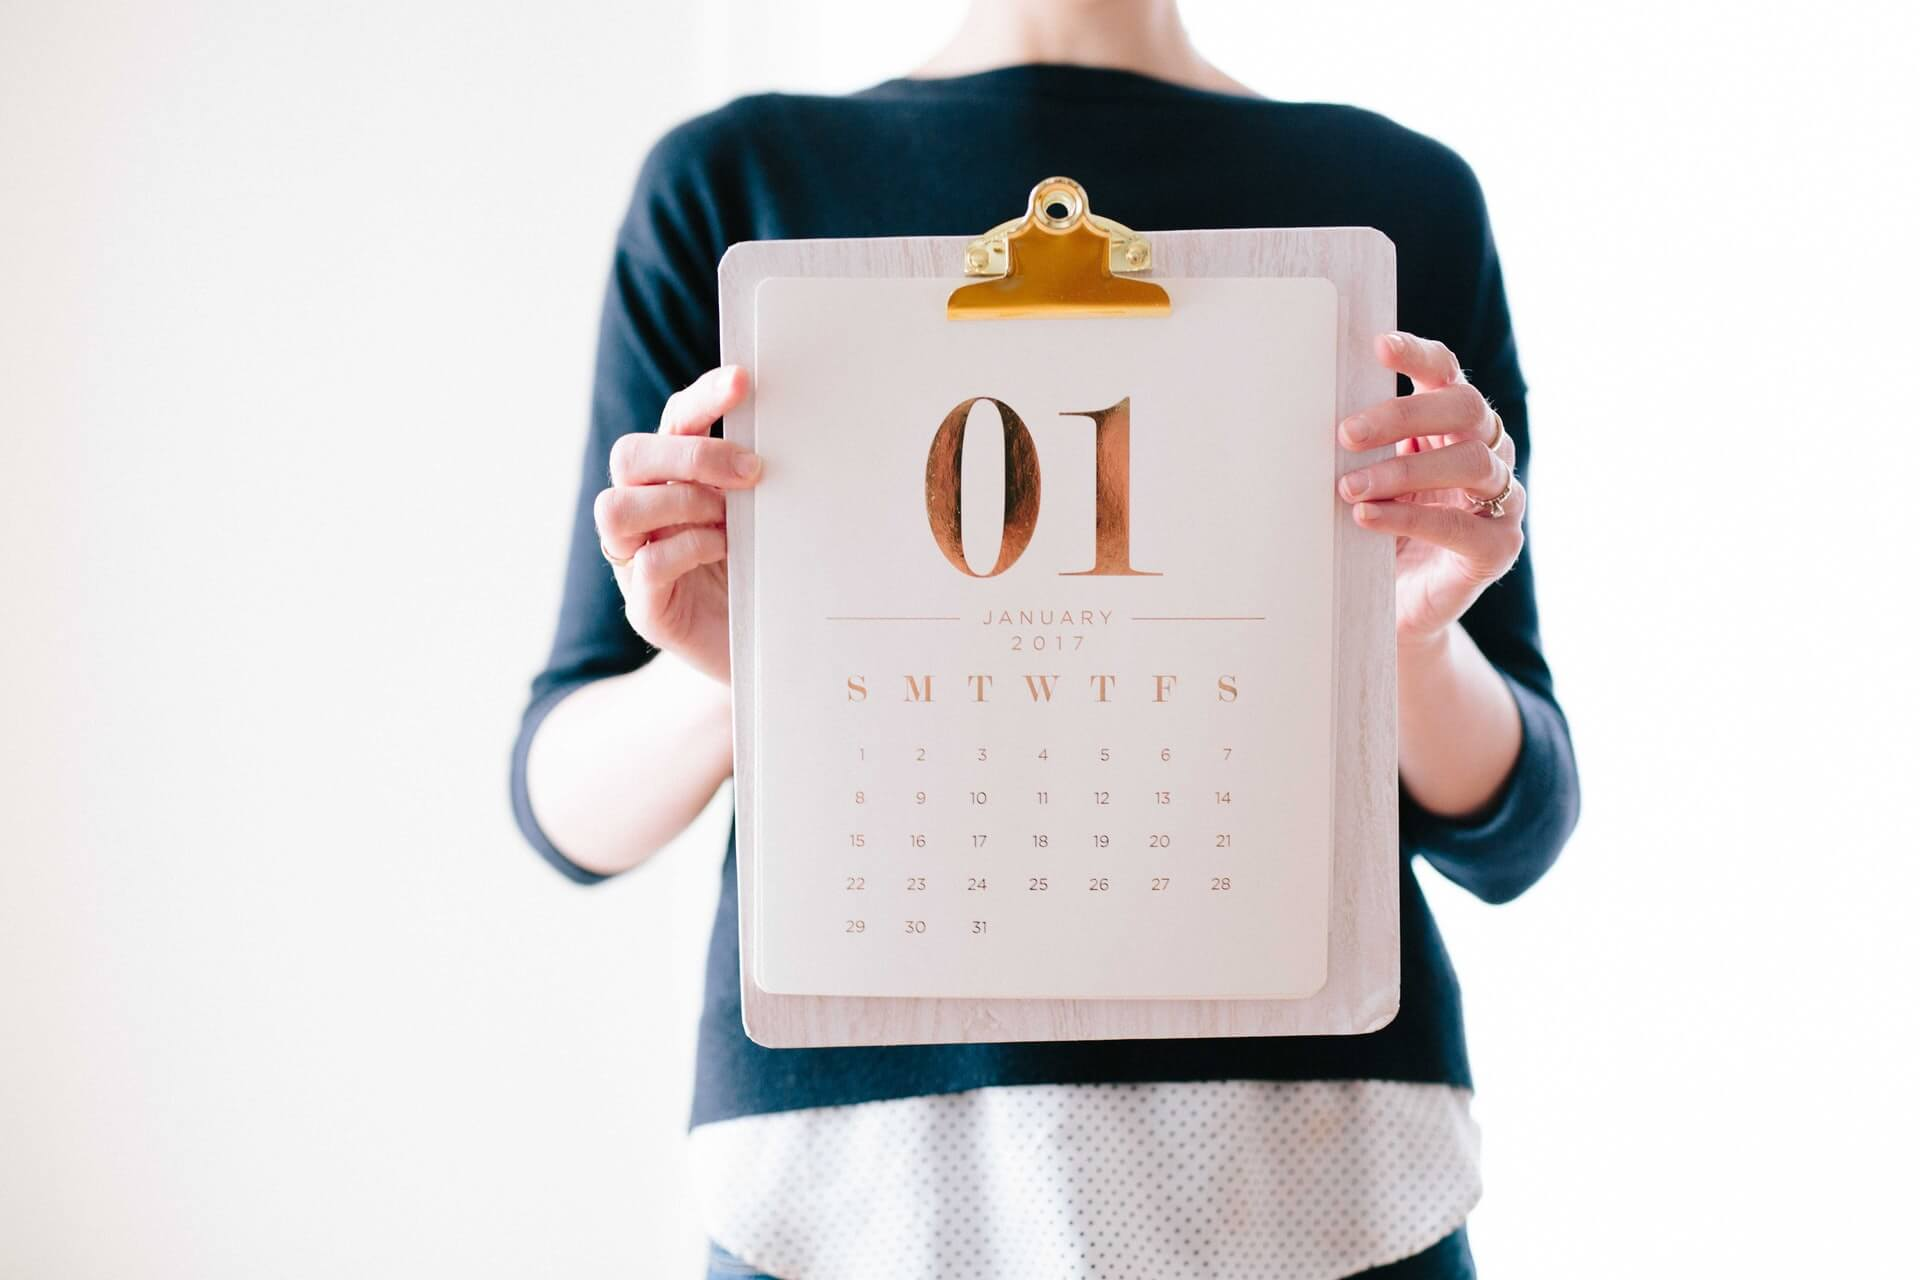 productive work from home meetings - calendar invites